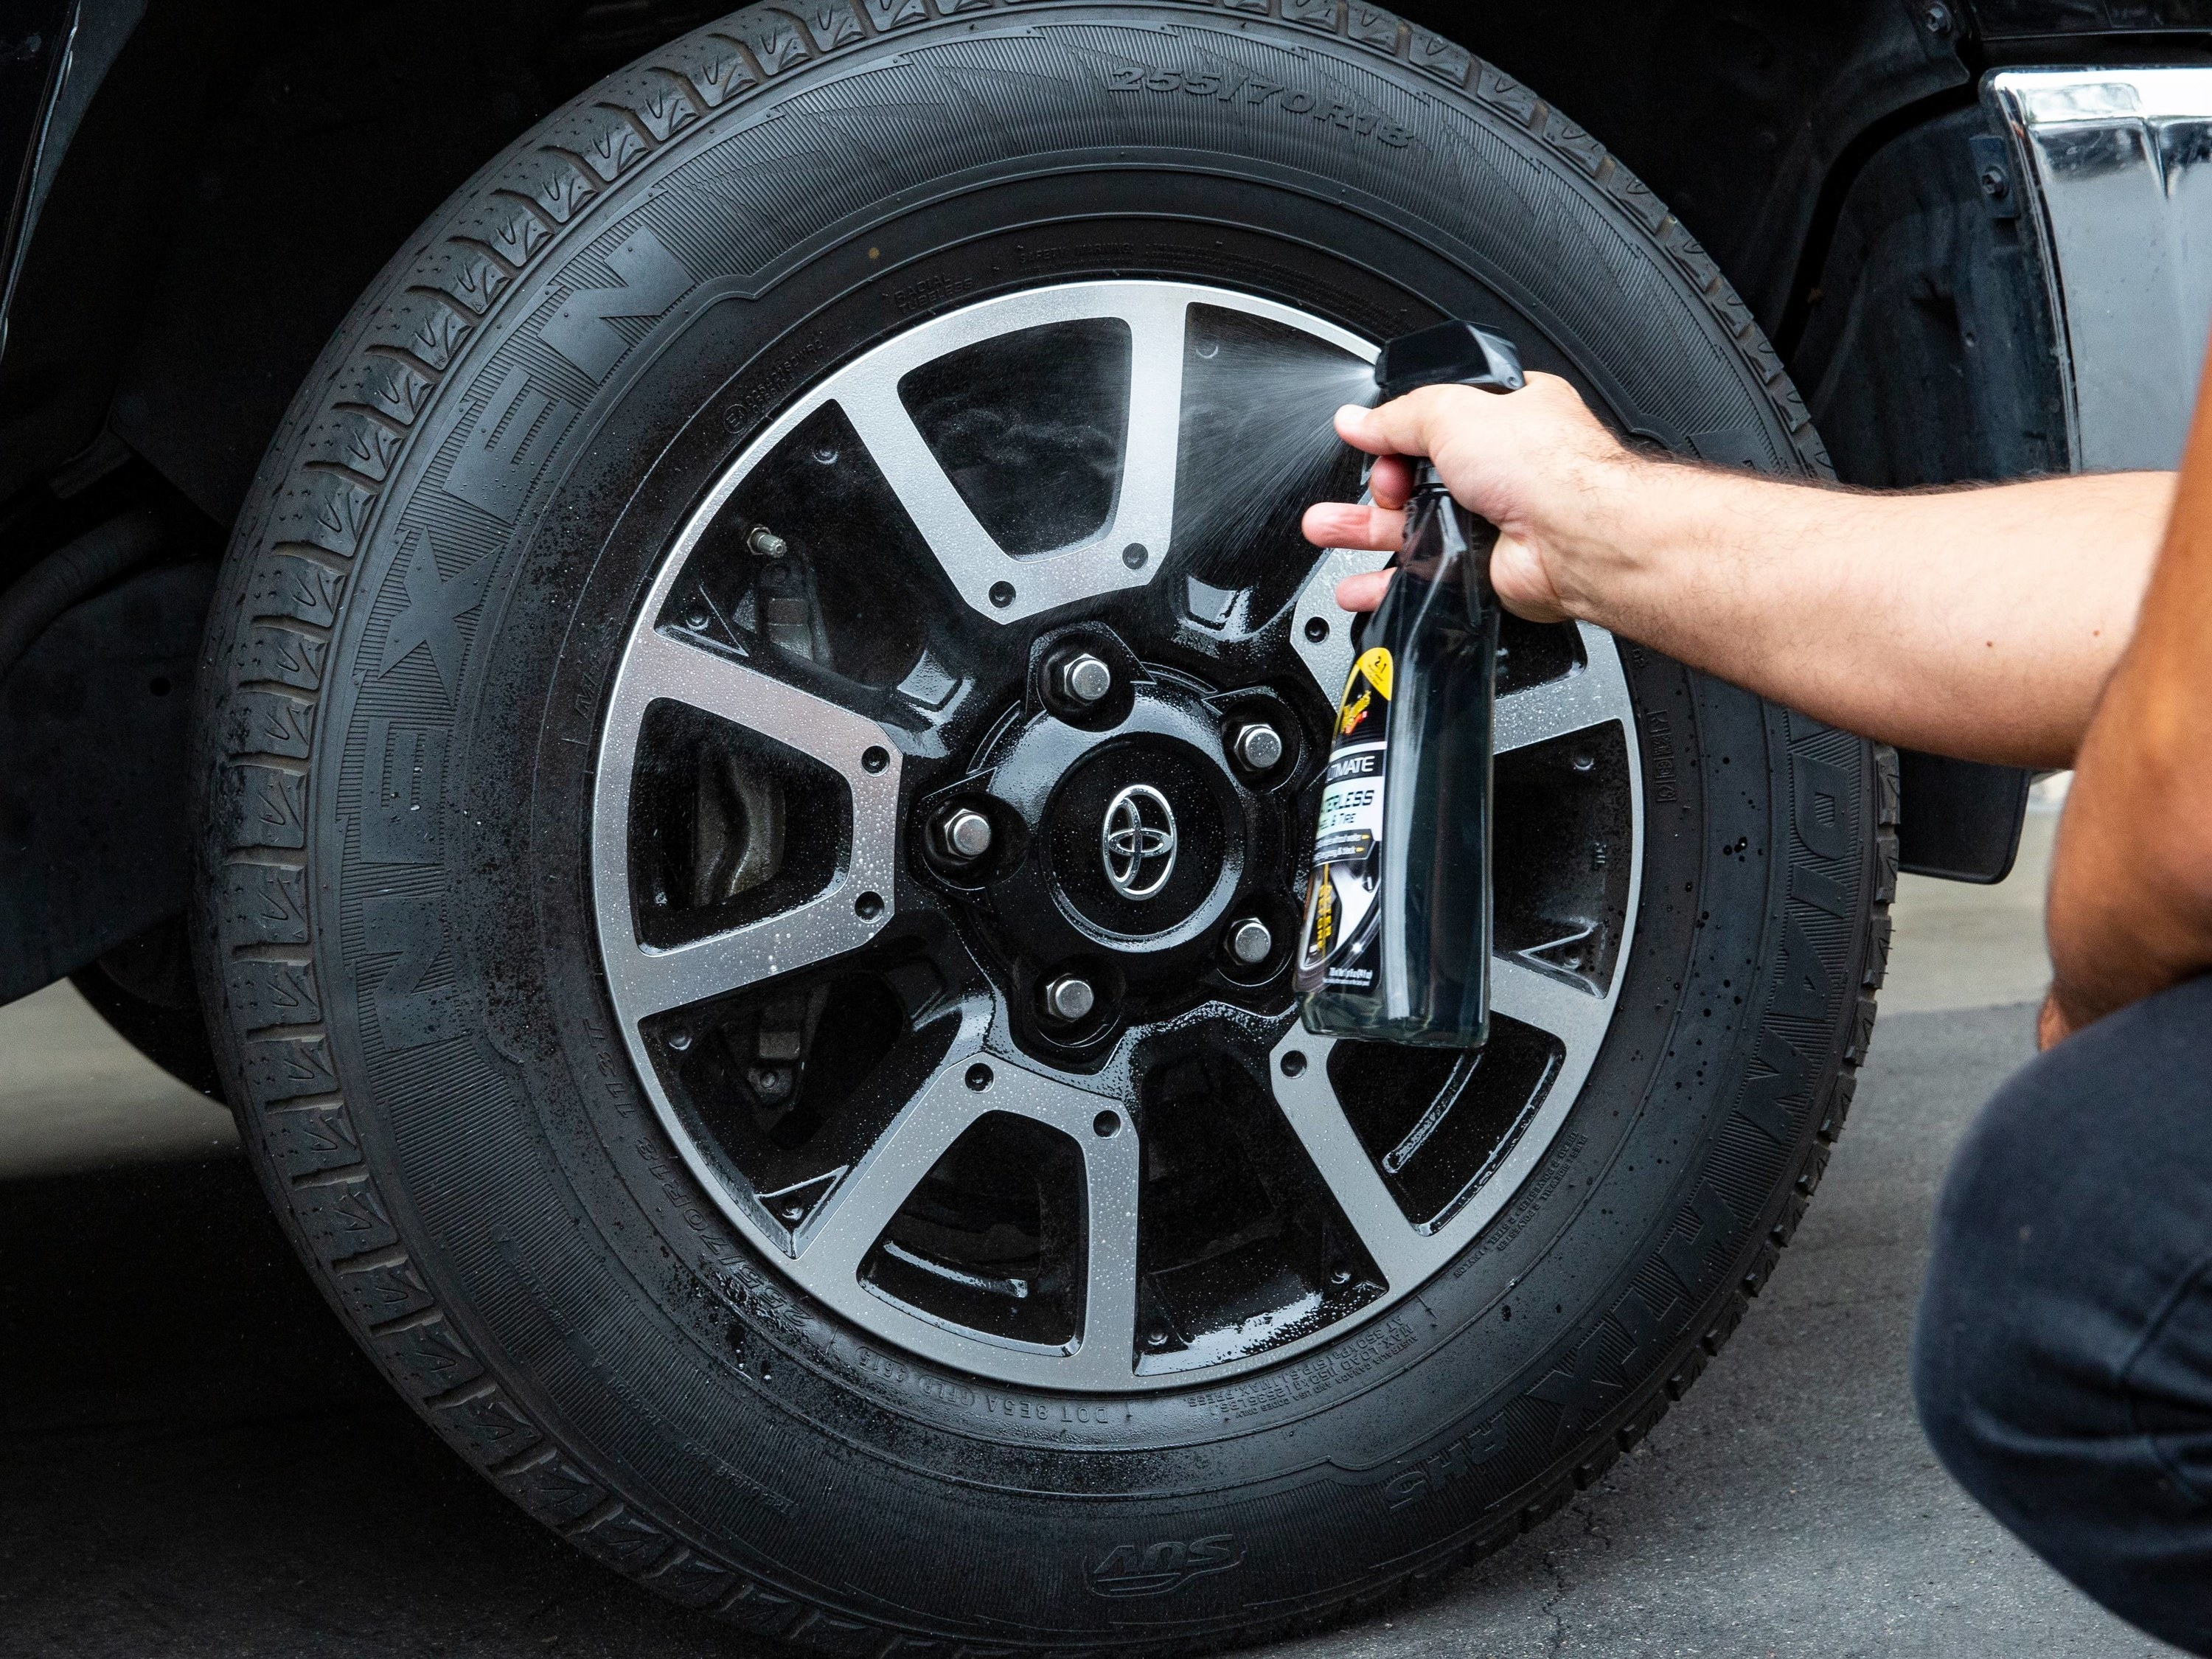 person spraying a wheel and tire dressing cleaner